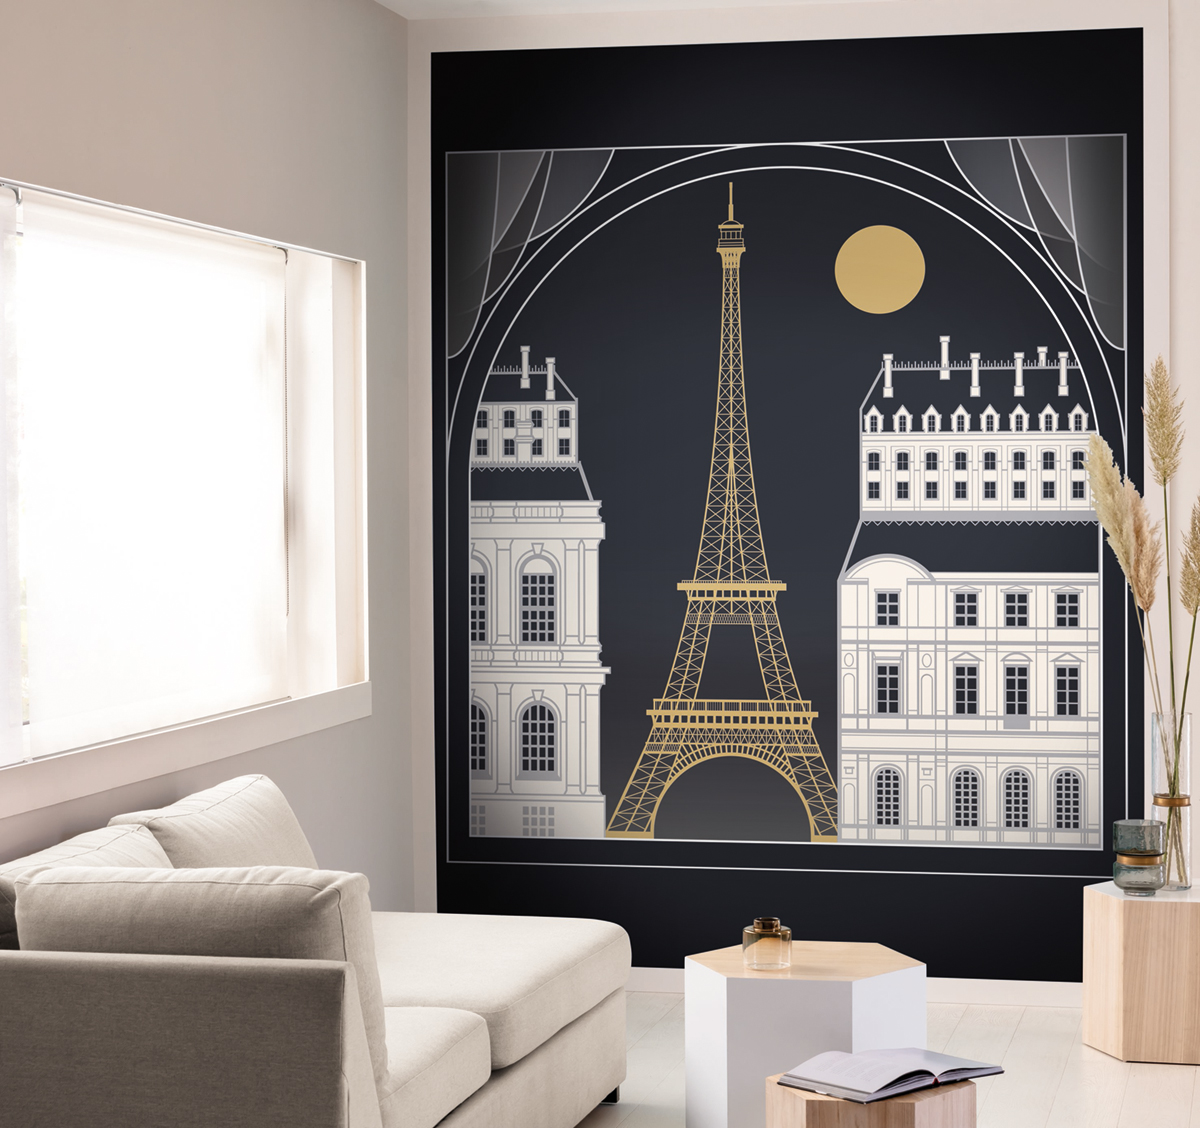 Papier peint Panoramique Tour Eiffel Paris BY NIGHT - Scarlett de Casélio AMB | Réf. SRL100529899